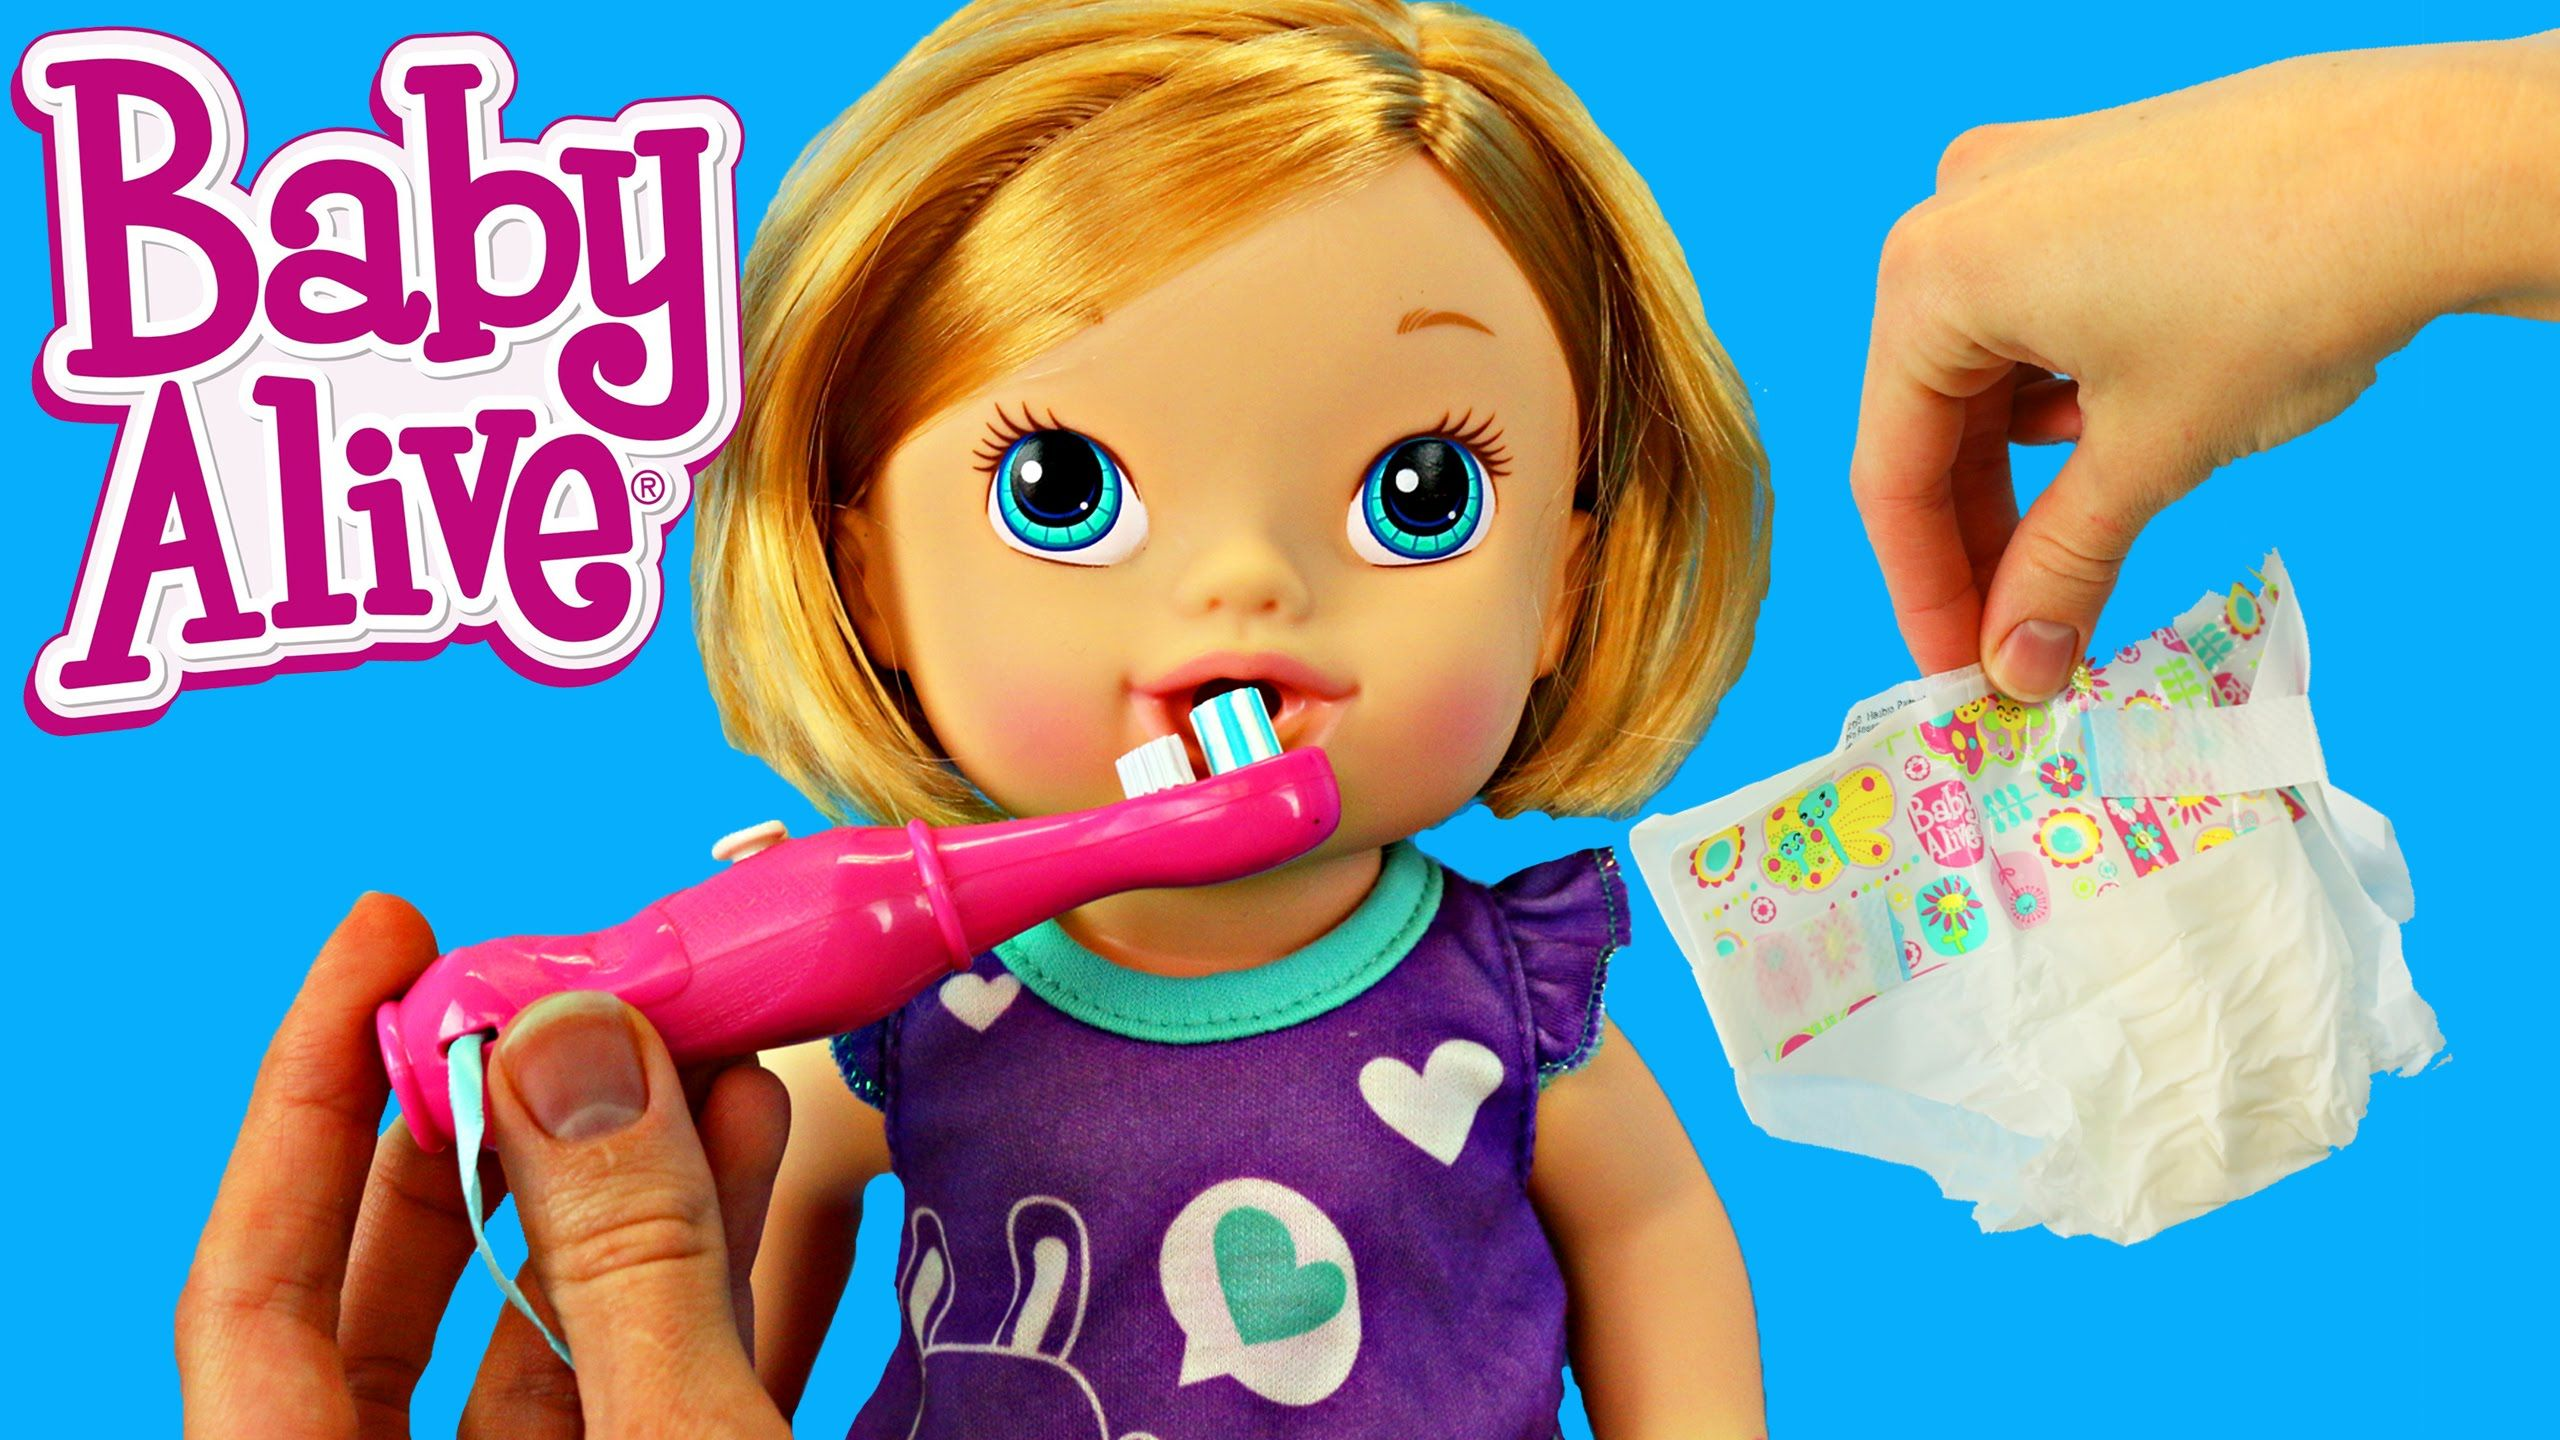 Baby Alive Toys : Baby alive brushy doll with pee diaper